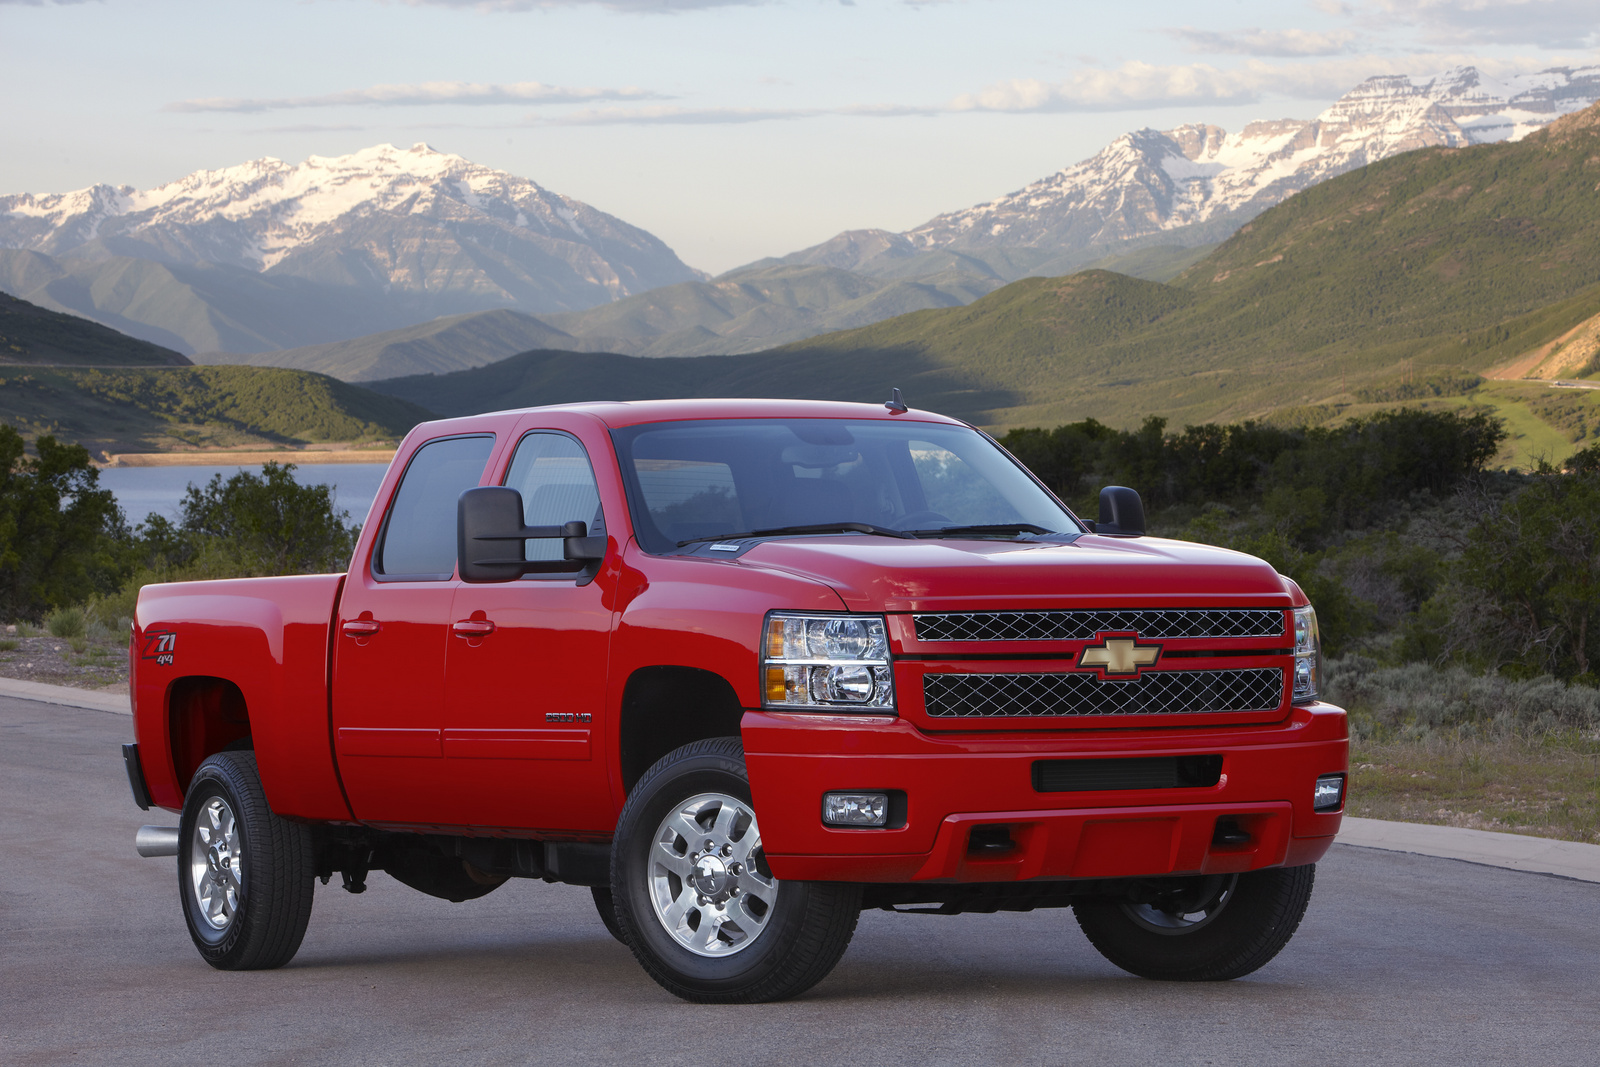 2013 chevrolet silverado 2500hd review cargurus. Black Bedroom Furniture Sets. Home Design Ideas